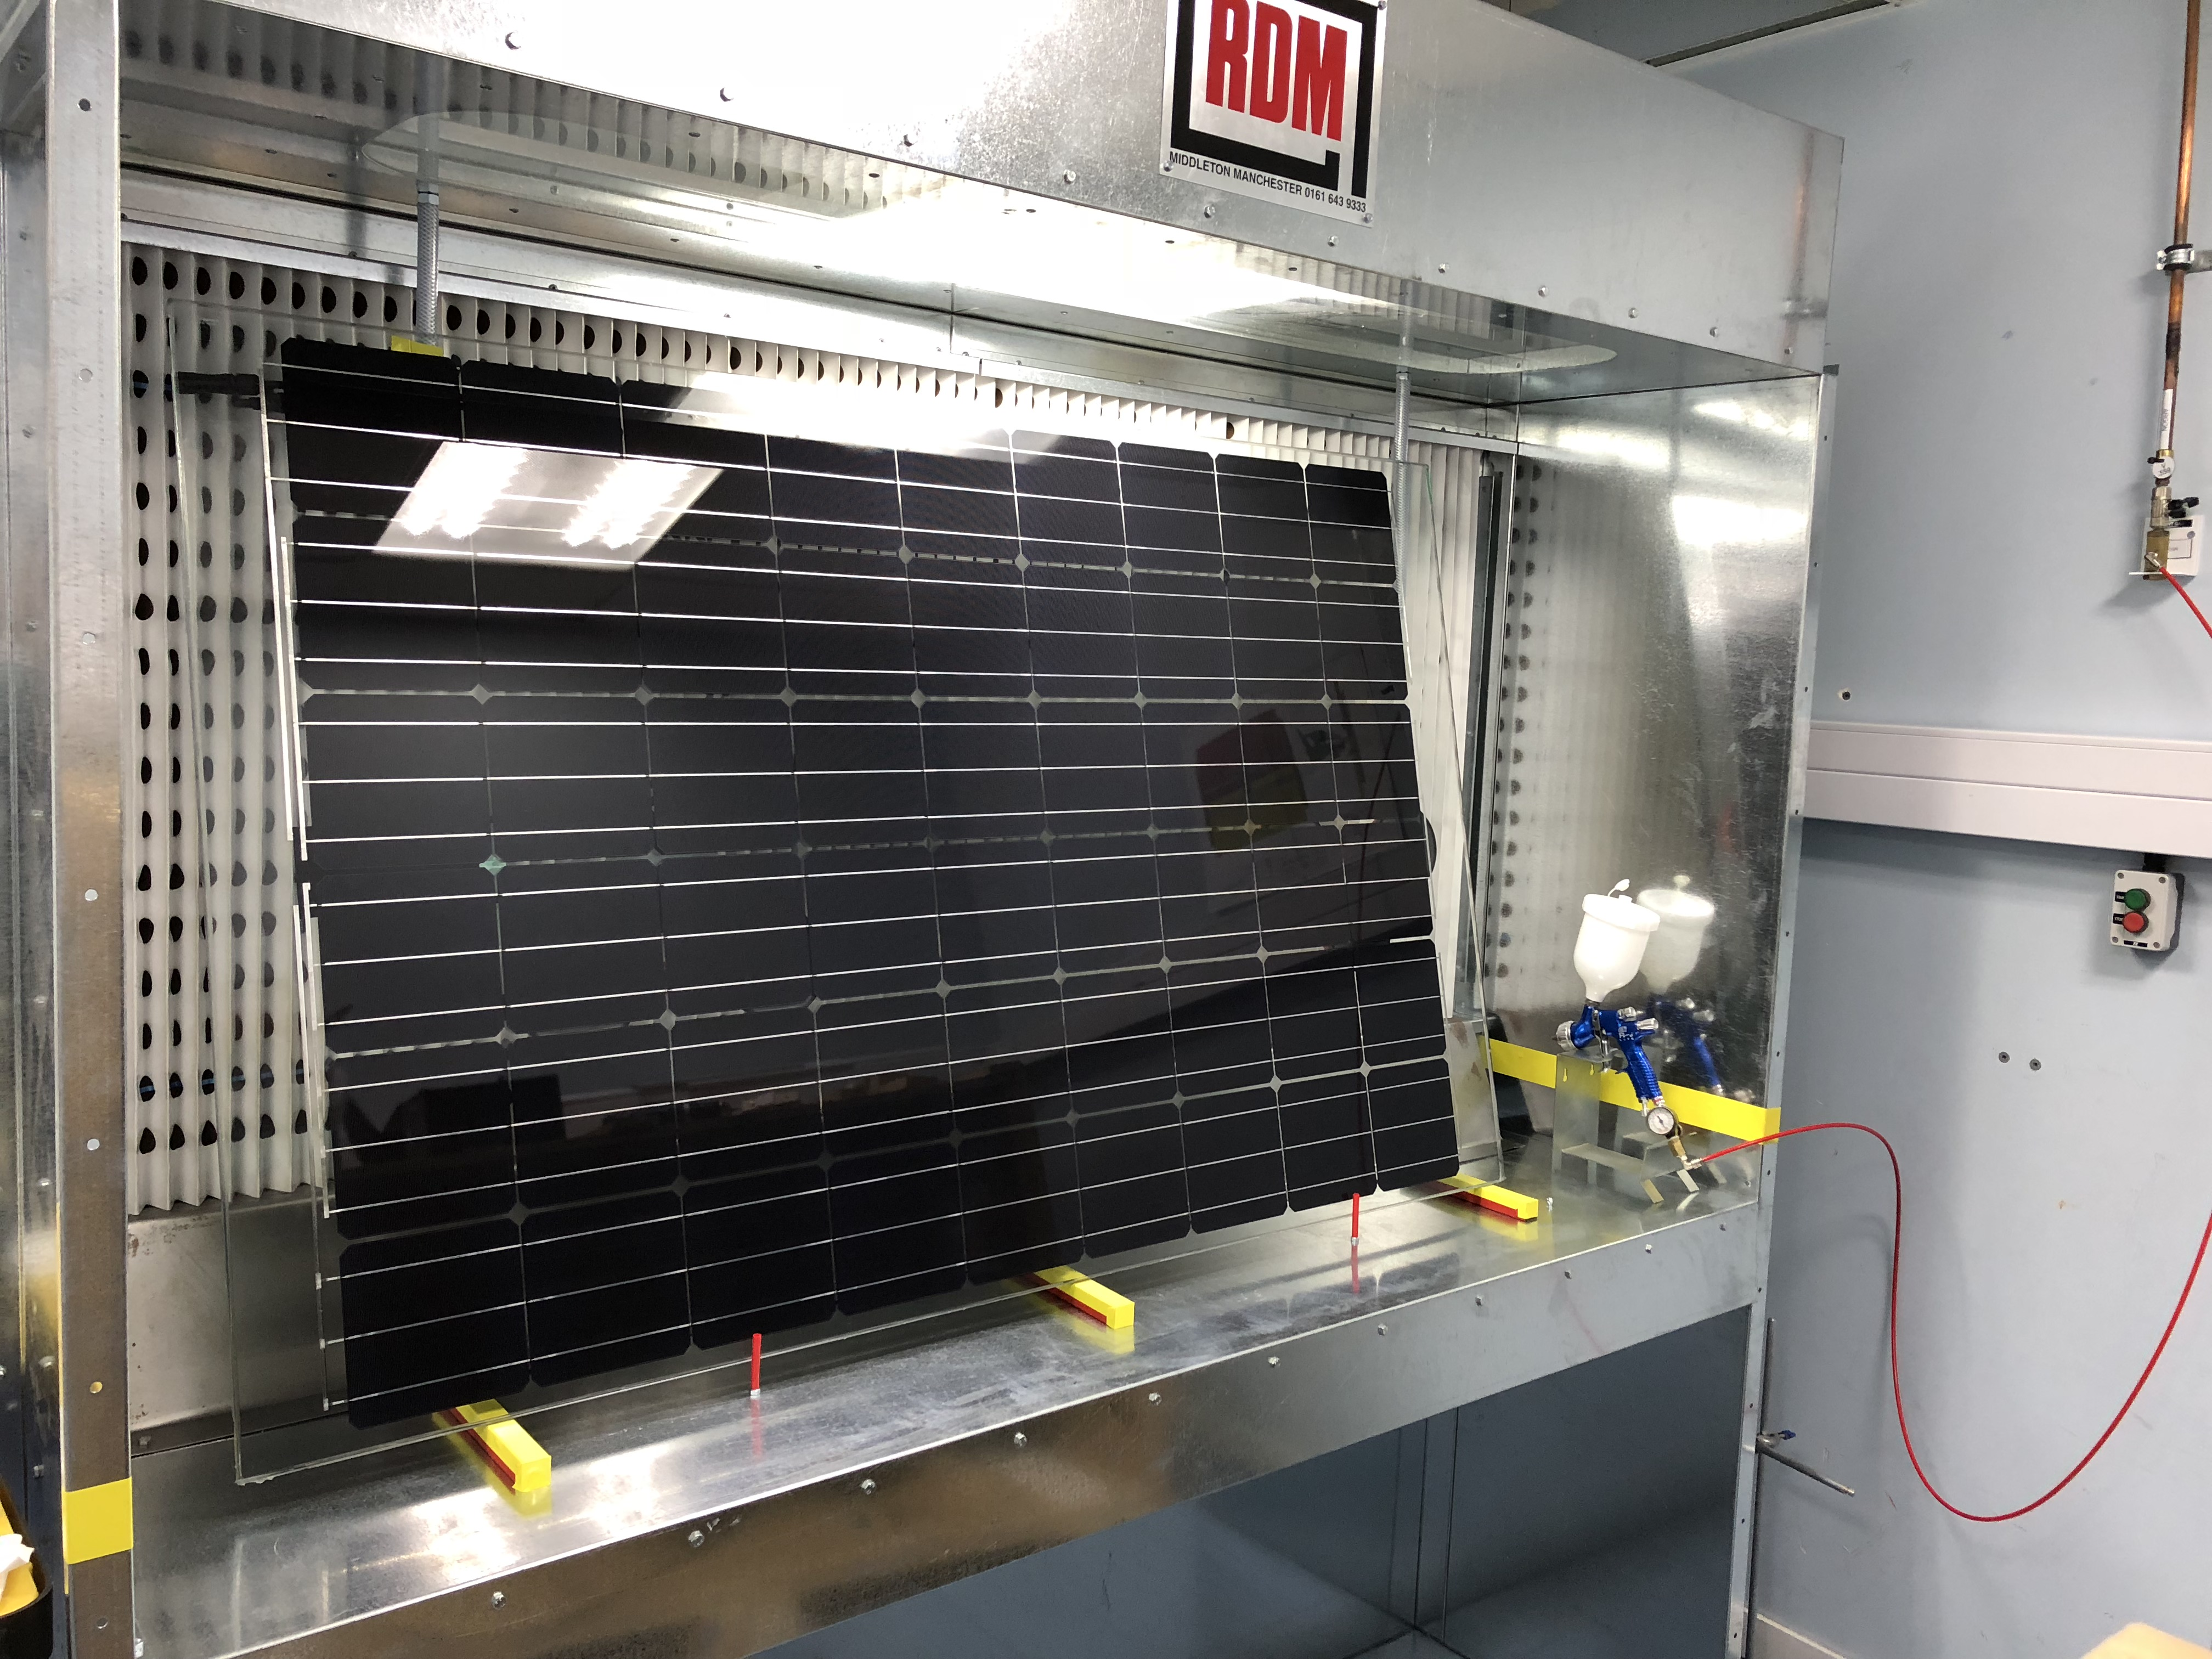 SolarSharc research body installs first full-size testing module